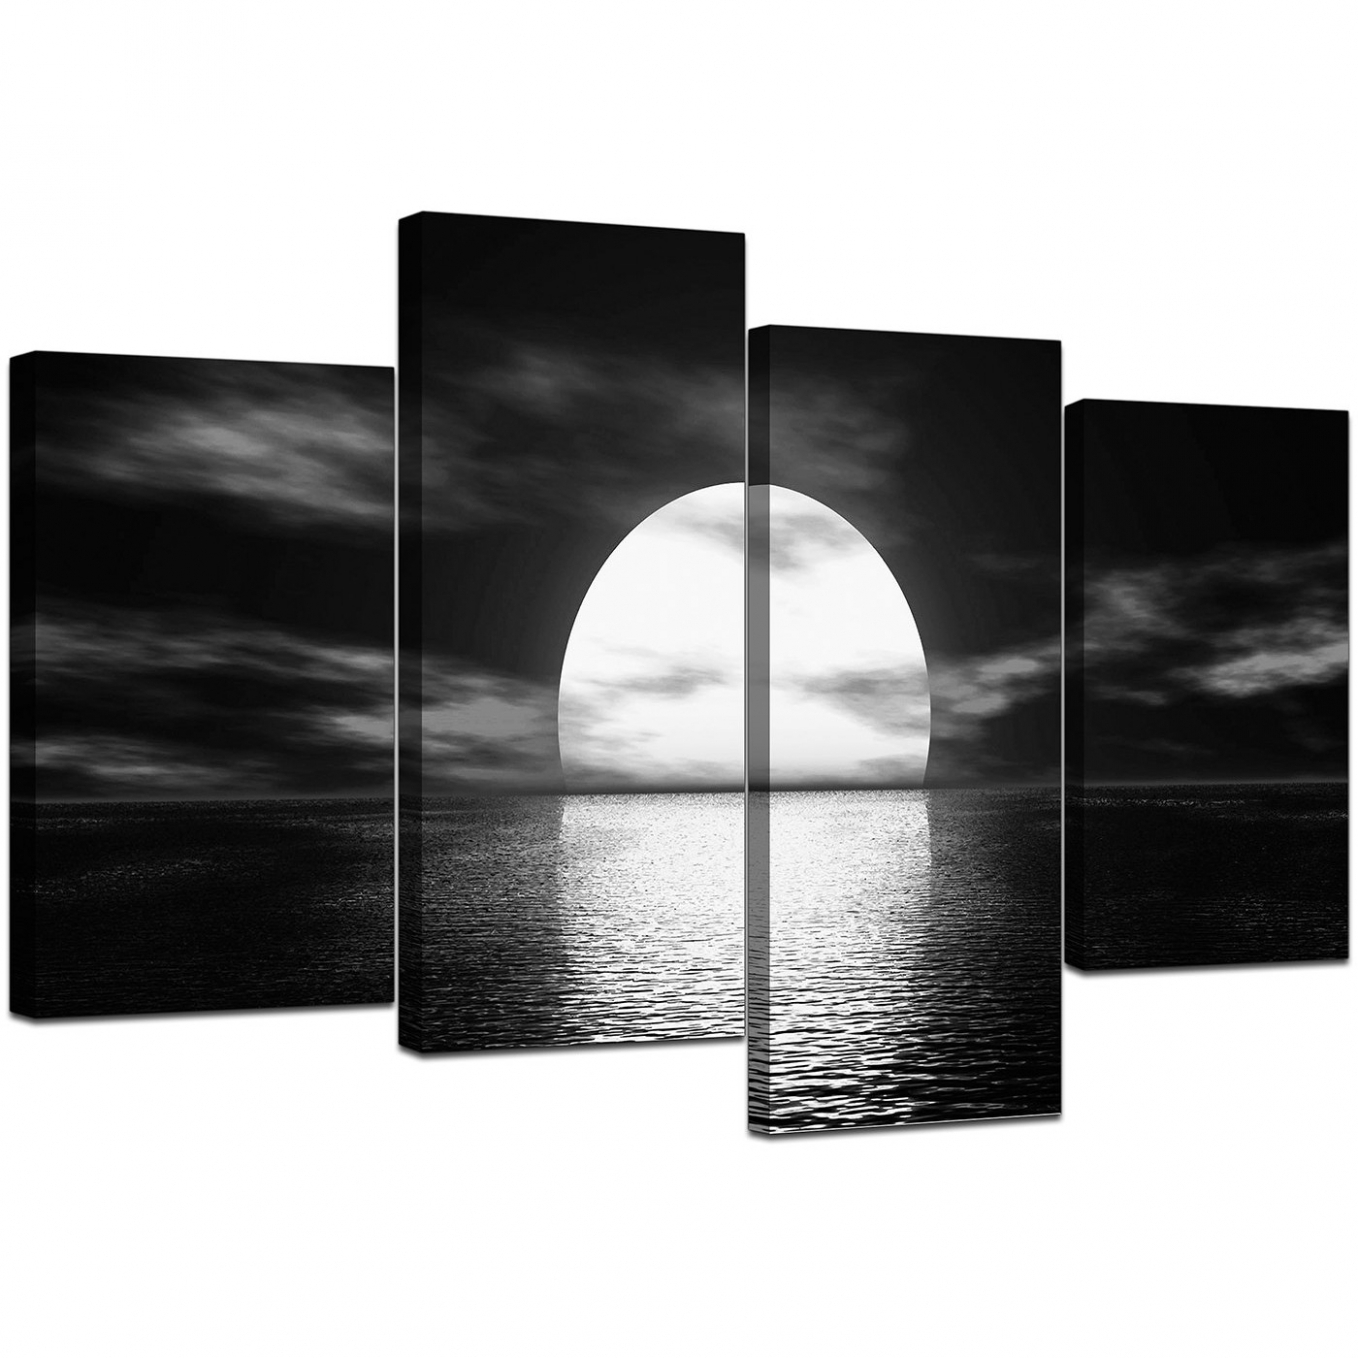 10 Best Ideas Of Black And White Large Canvas Wall Art Inside Most Up To Date Black And White Photography Canvas Wall Art (View 8 of 15)